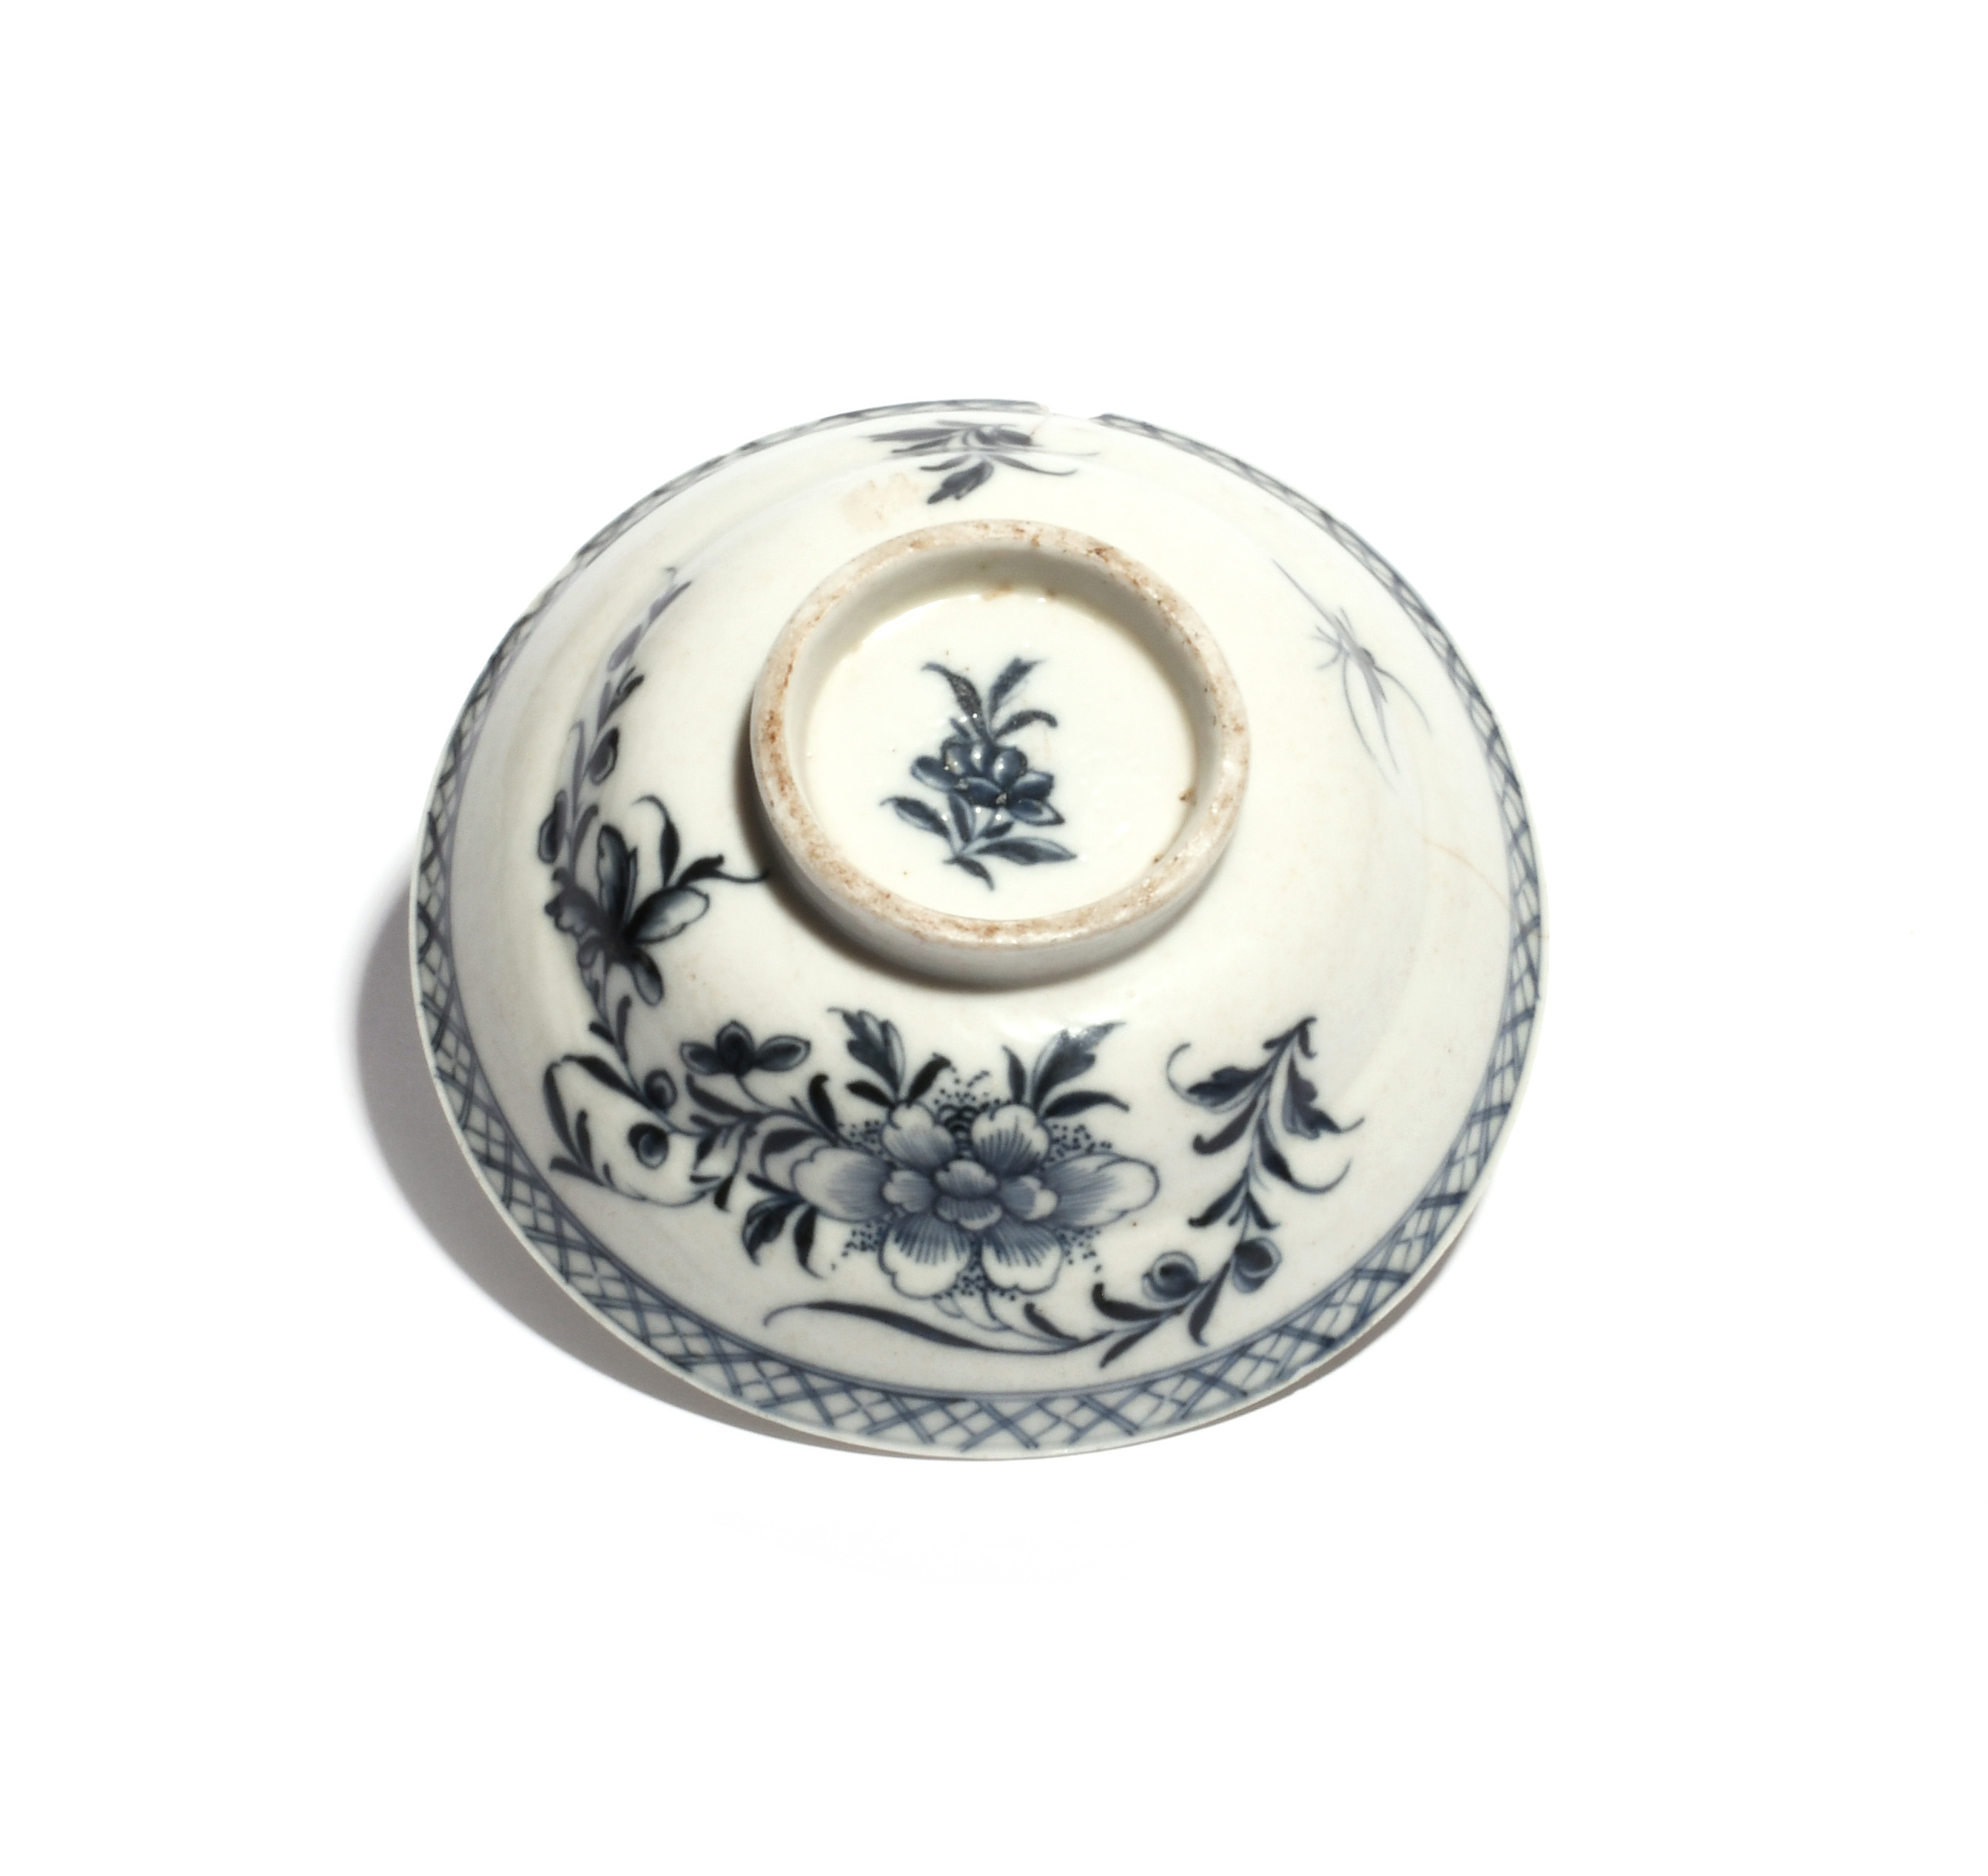 A rare Plymouth blue and white bowl cover c.1770, of ogee shape, painted in a dark blue with a spray